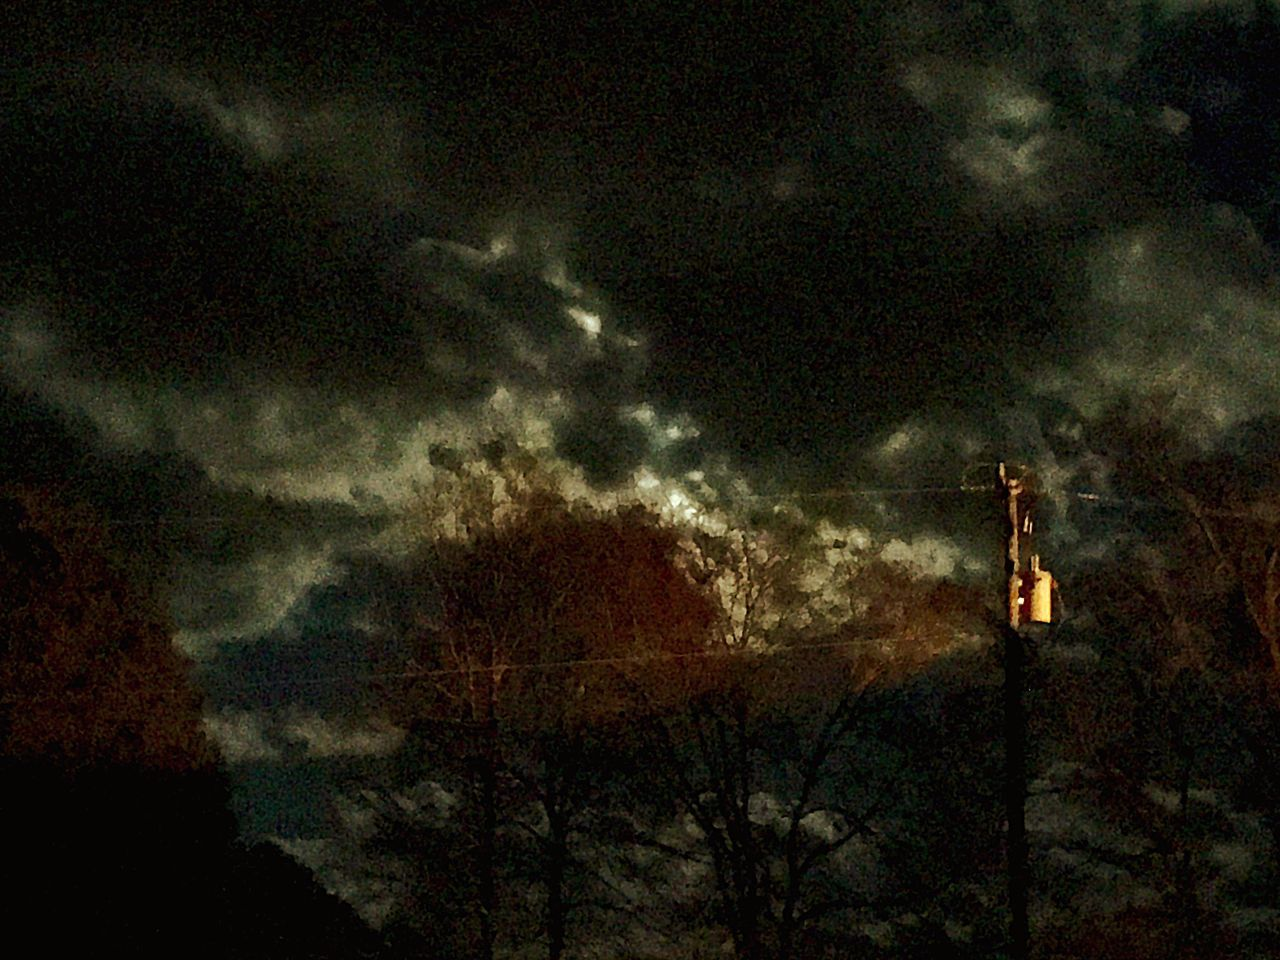 sky, cloud - sky, silhouette, night, nature, tree, outdoors, no people, low angle view, beauty in nature